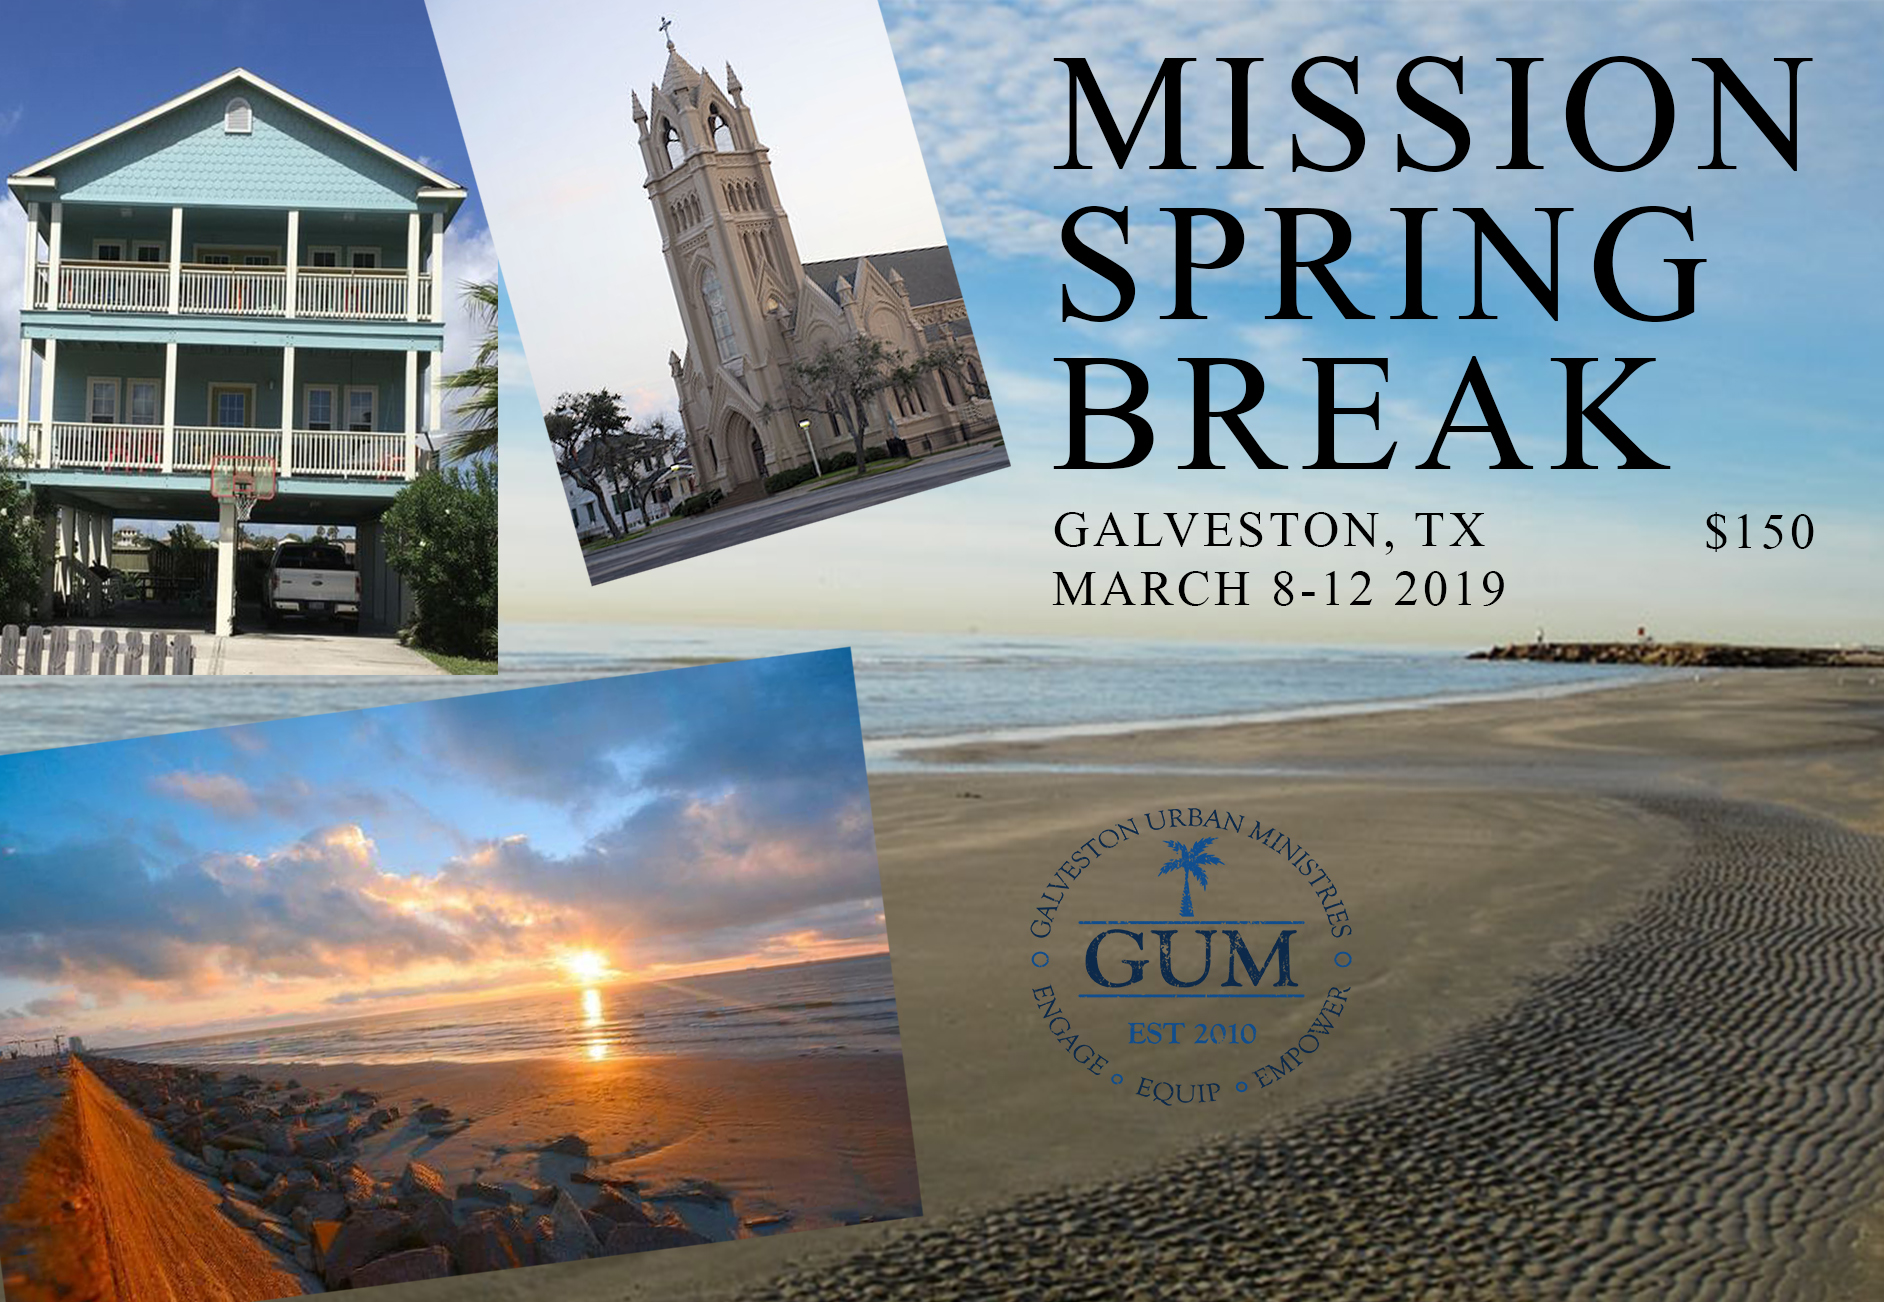 Mission Spring Break - Limited Spots Available – Only 25 teens and 5 AdultsTRANSPORTATION: CORE Adult Leaders personal vehiclesWe will meet at St Gabriel on Friday, March 8 at 5:30pm to load up and head out.Please eat before arriving or bring a dinner with you.We will leave Tuesday, March 12 at Noon. We should return to St Gabriel on Tuesday, March 12 at 6:00pm